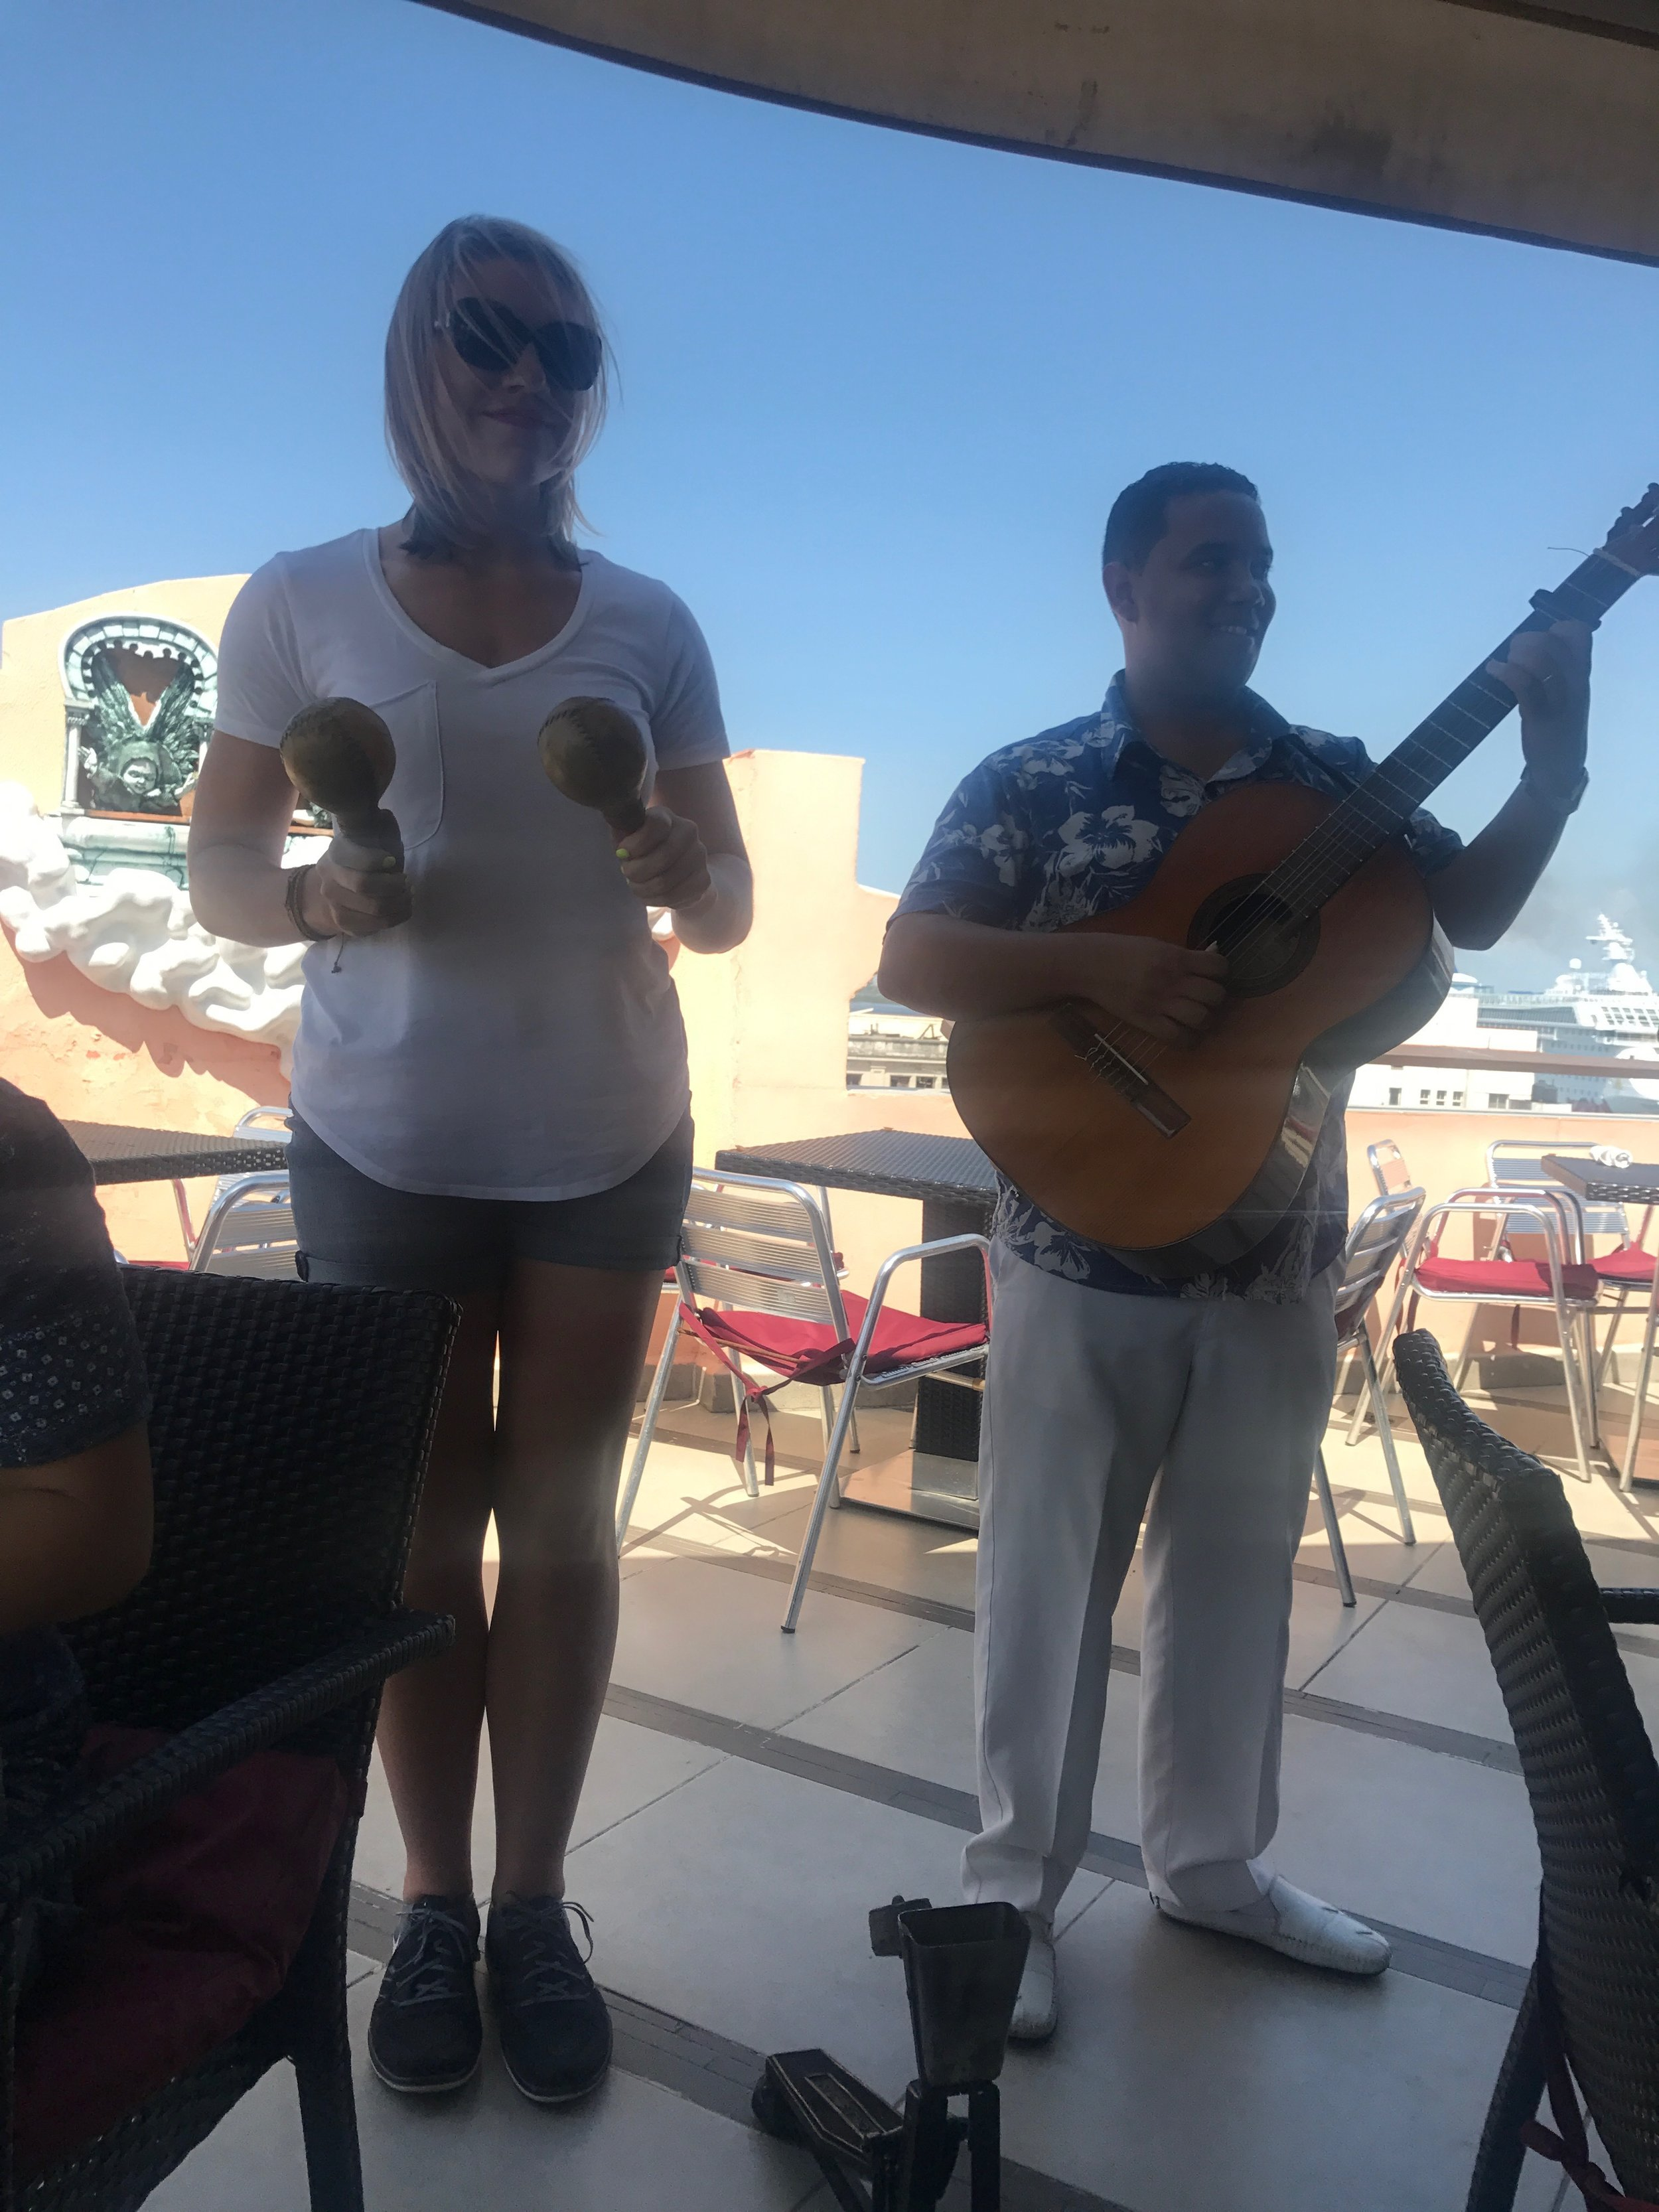 Here's me, sober AF playing the maracas in a Cuban band.